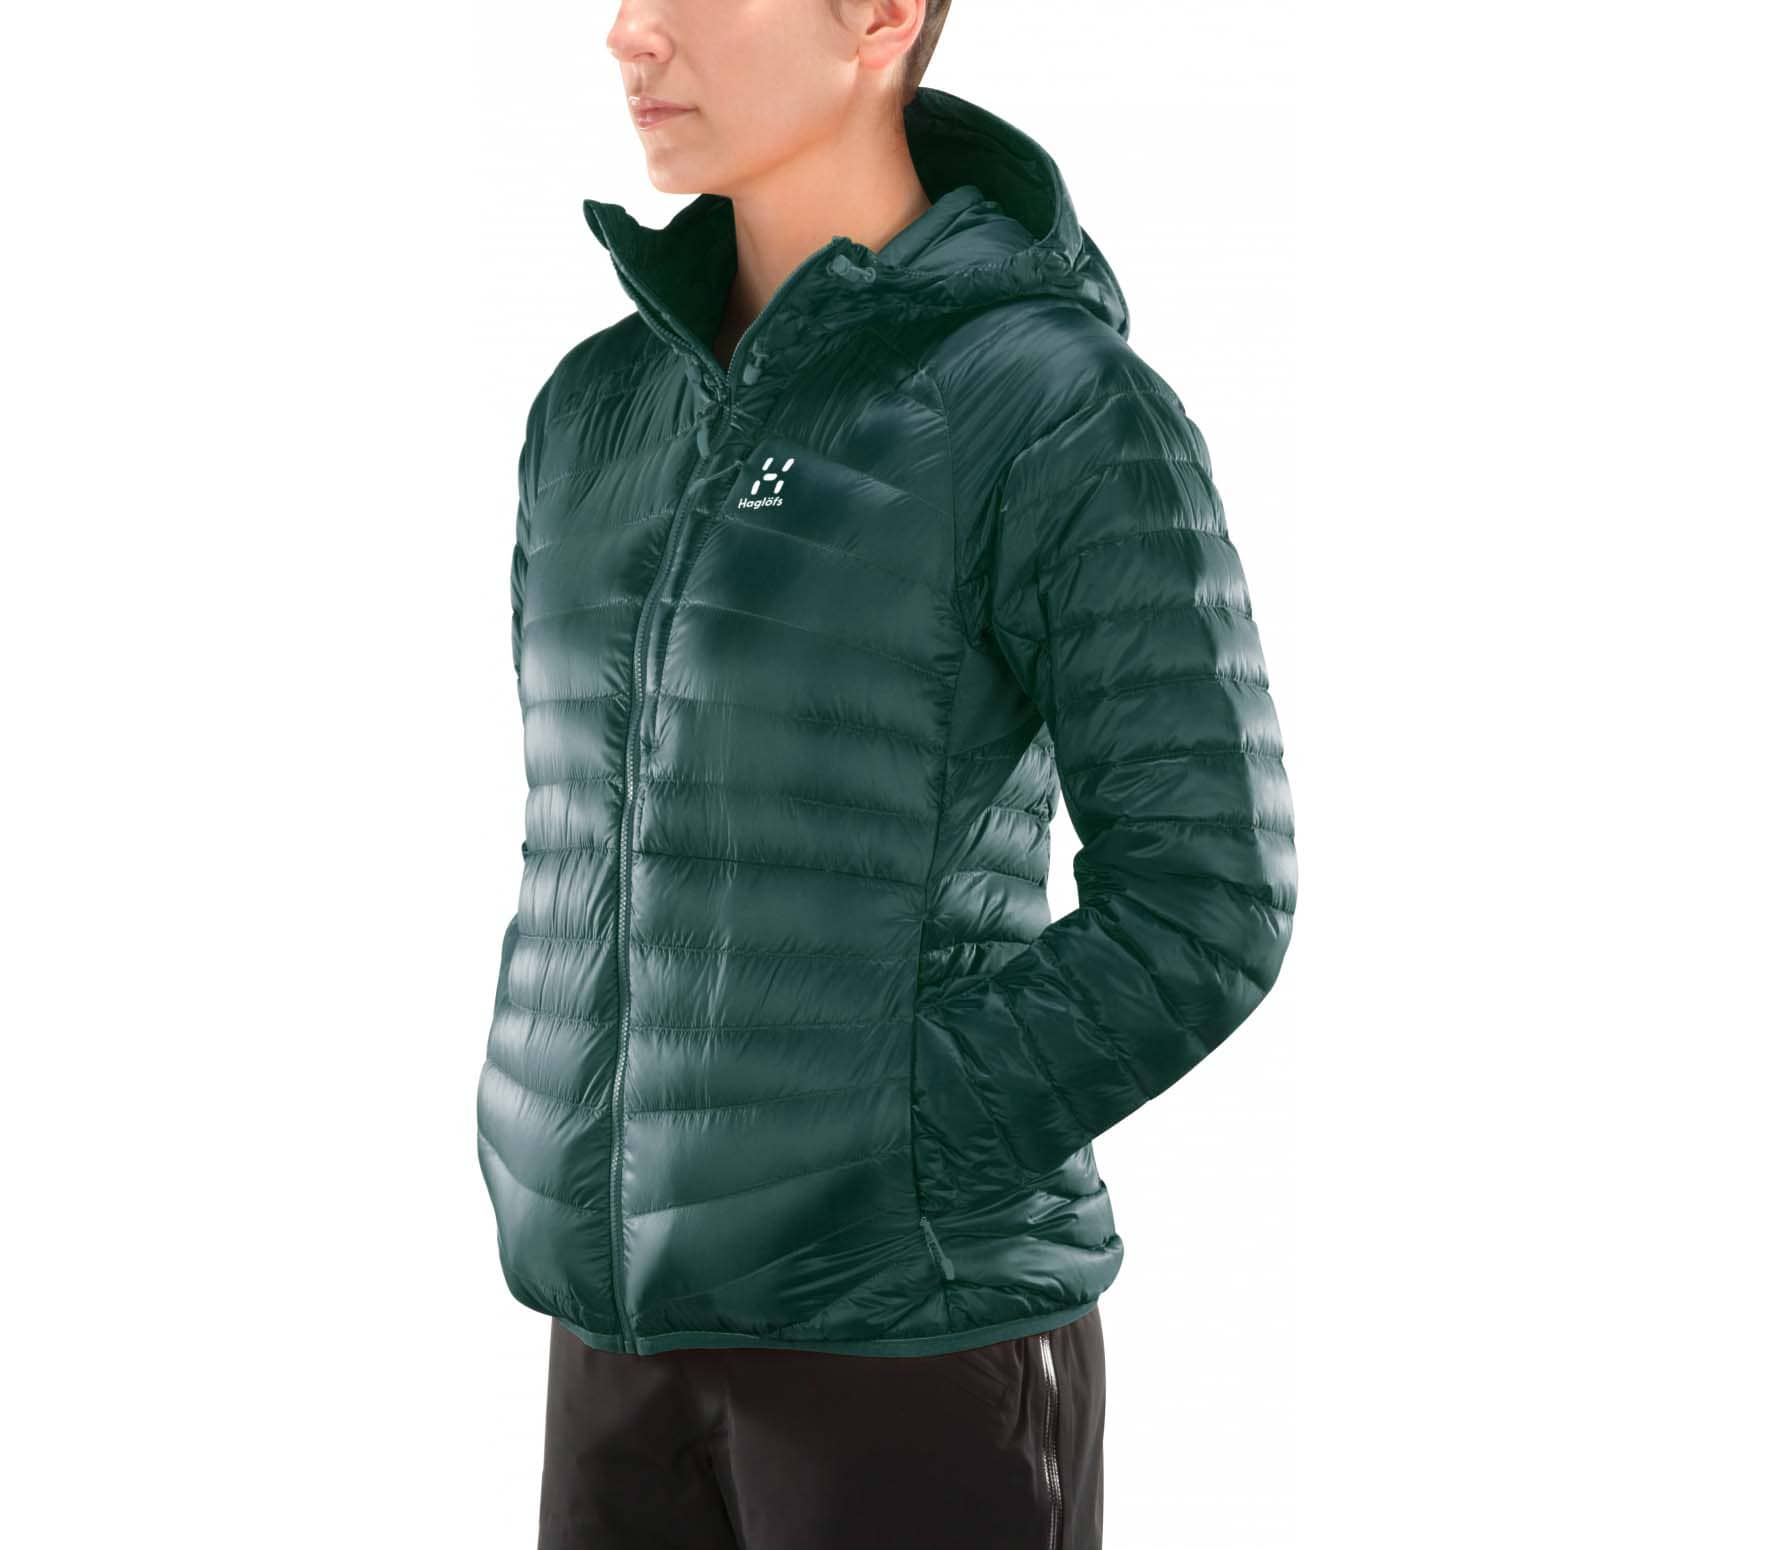 a7c4320f1849 Haglöfs - Essens Down Damen Isolationsjacke (grün) im Online Shop ...